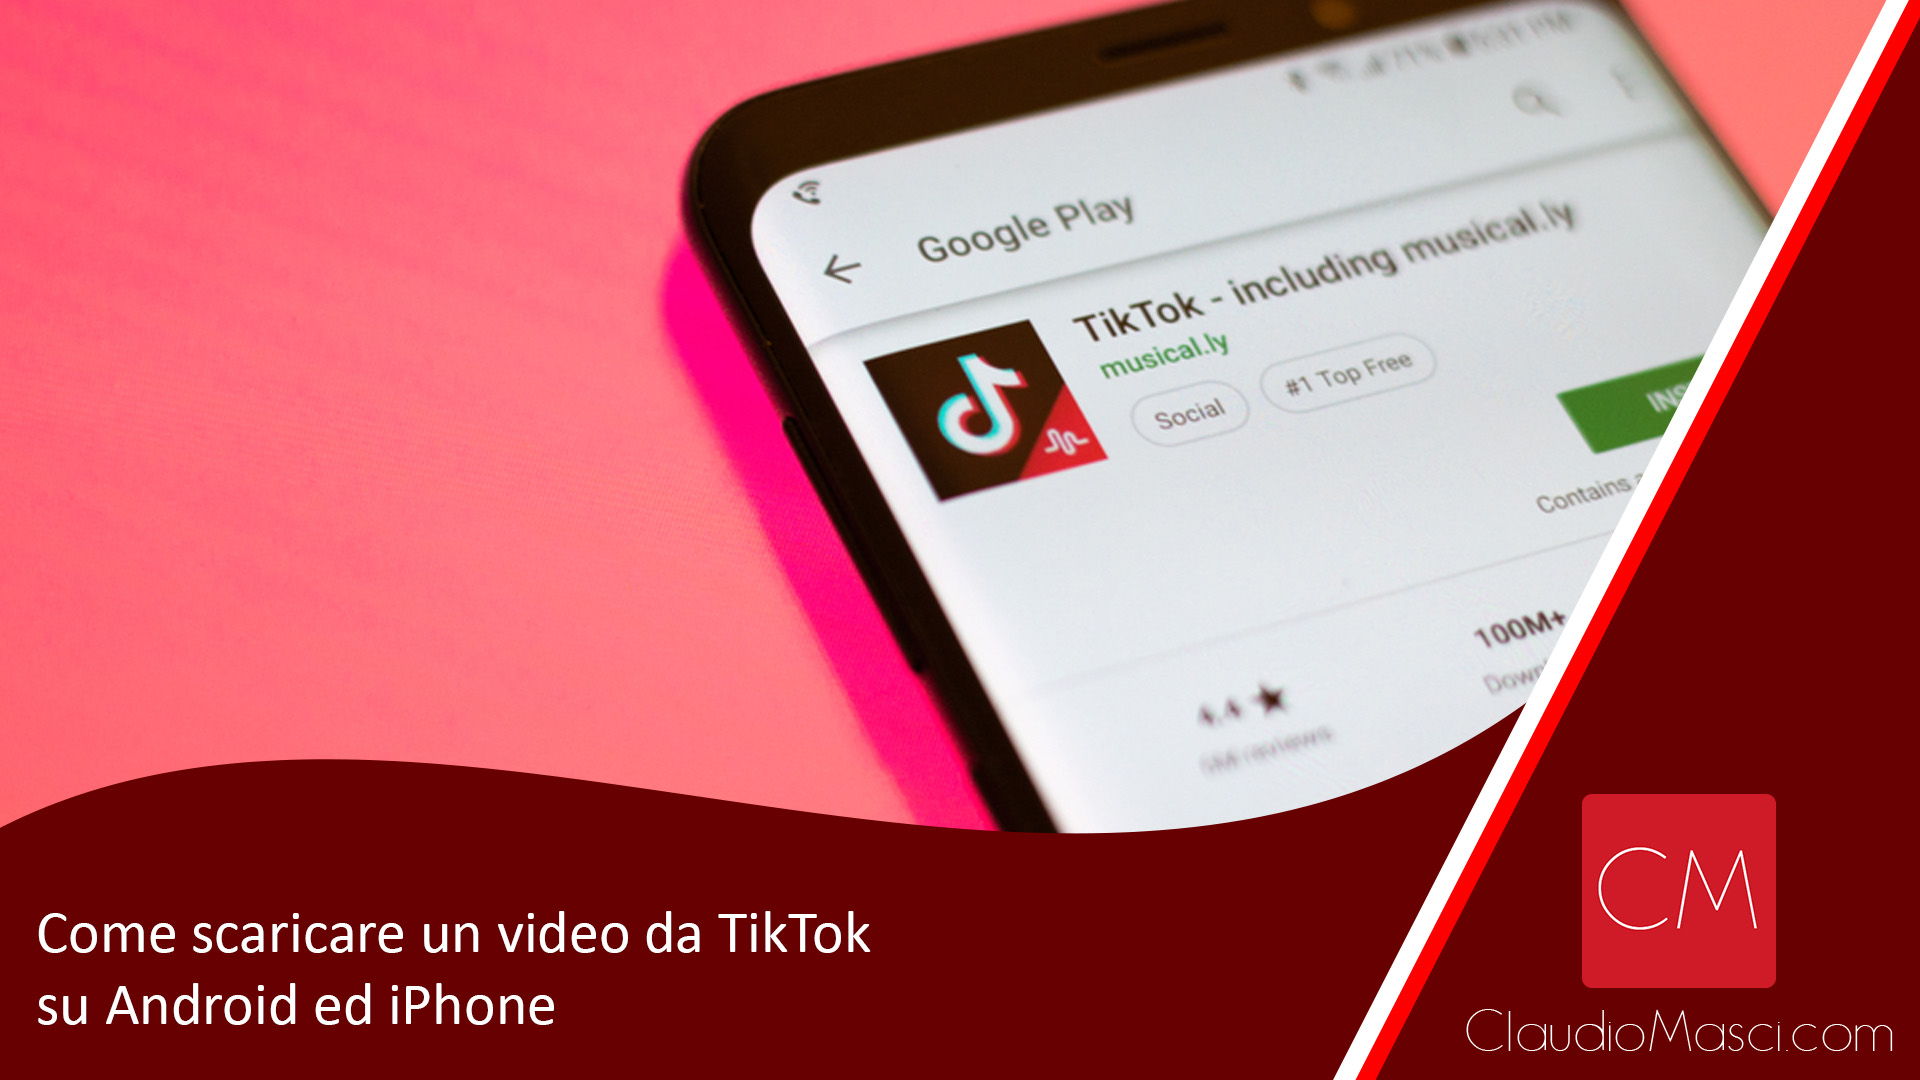 Come scaricare un video da TikTok su Android ed iPhone